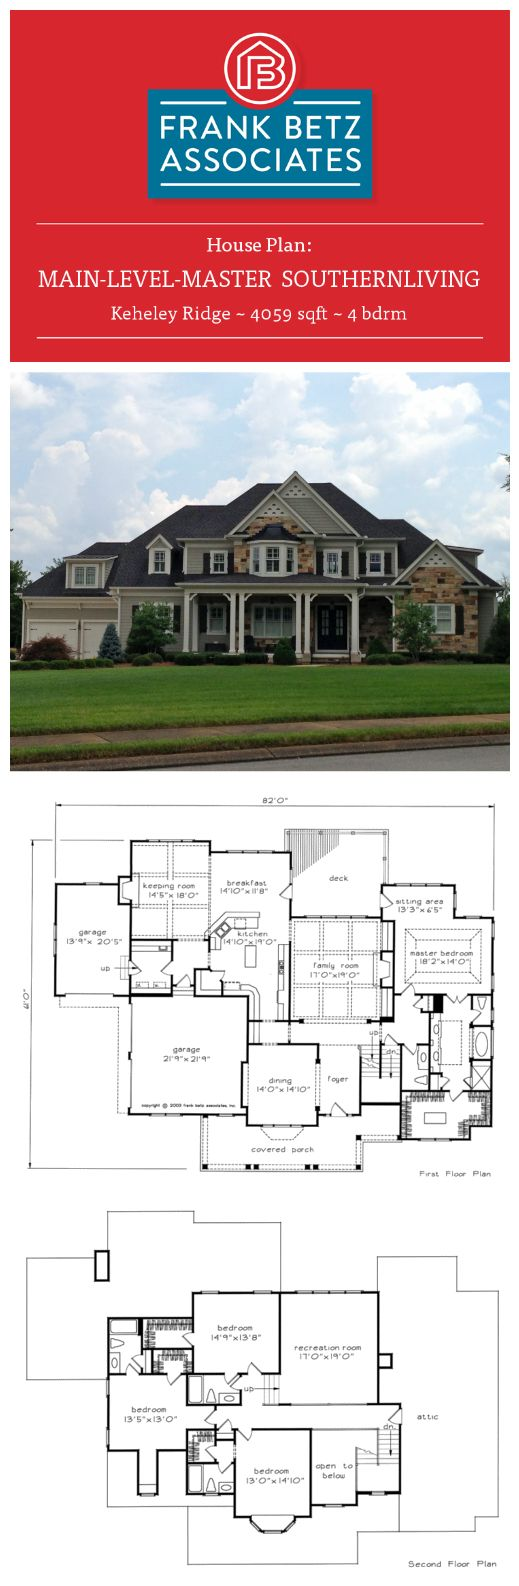 25 best southern living plans images on pinterest house plans